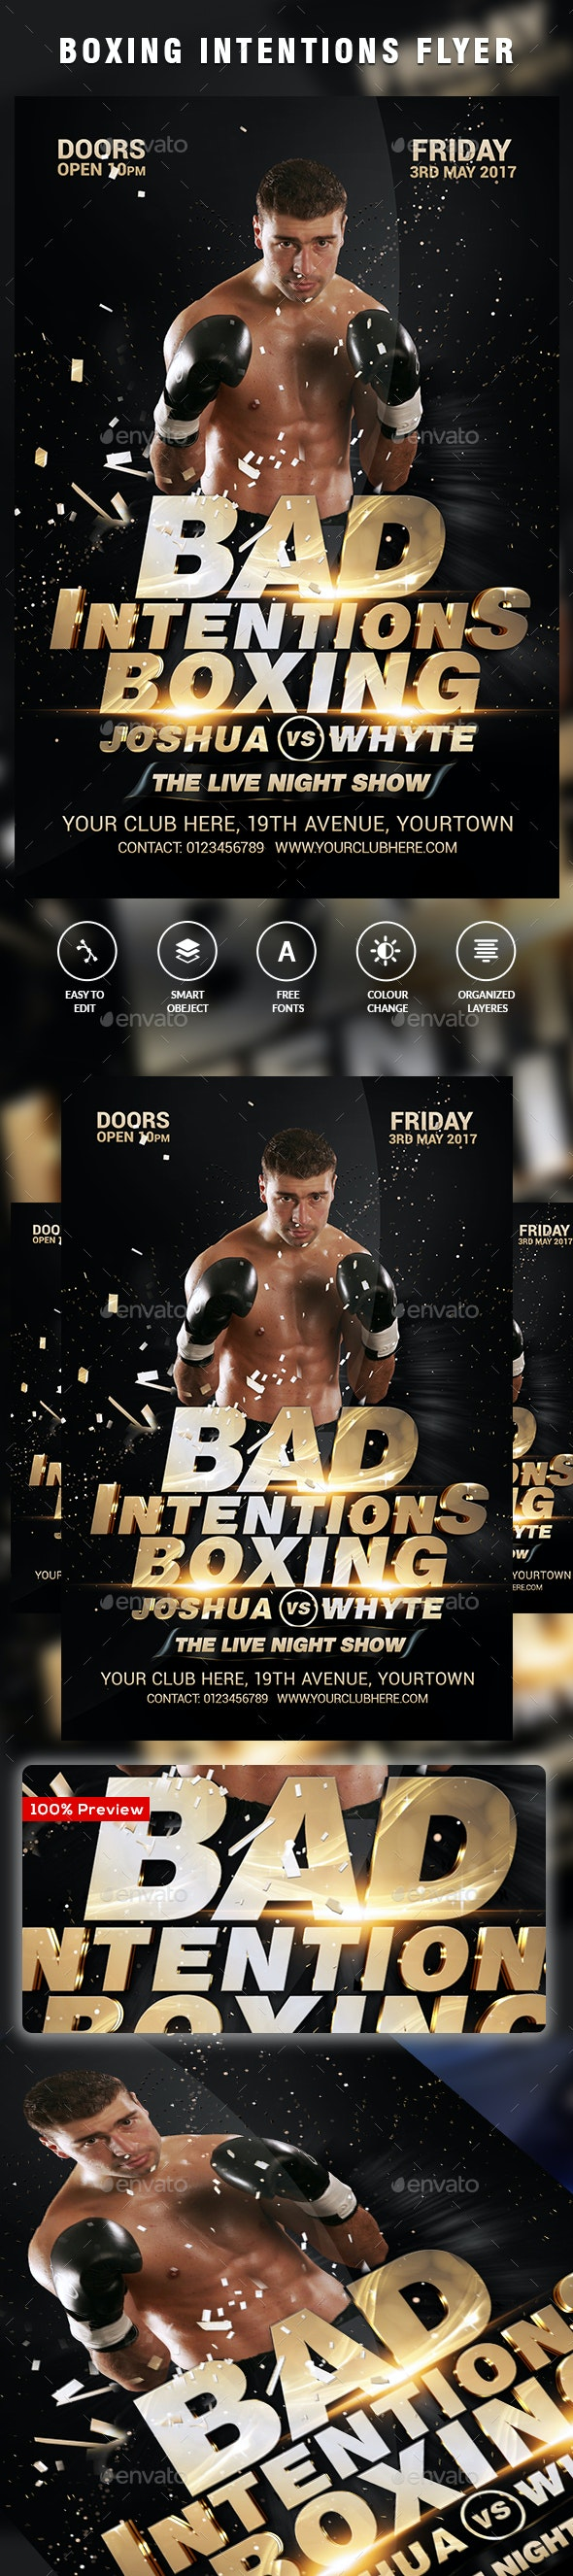 MMA - Boxing Flyer Template - Clubs & Parties Events